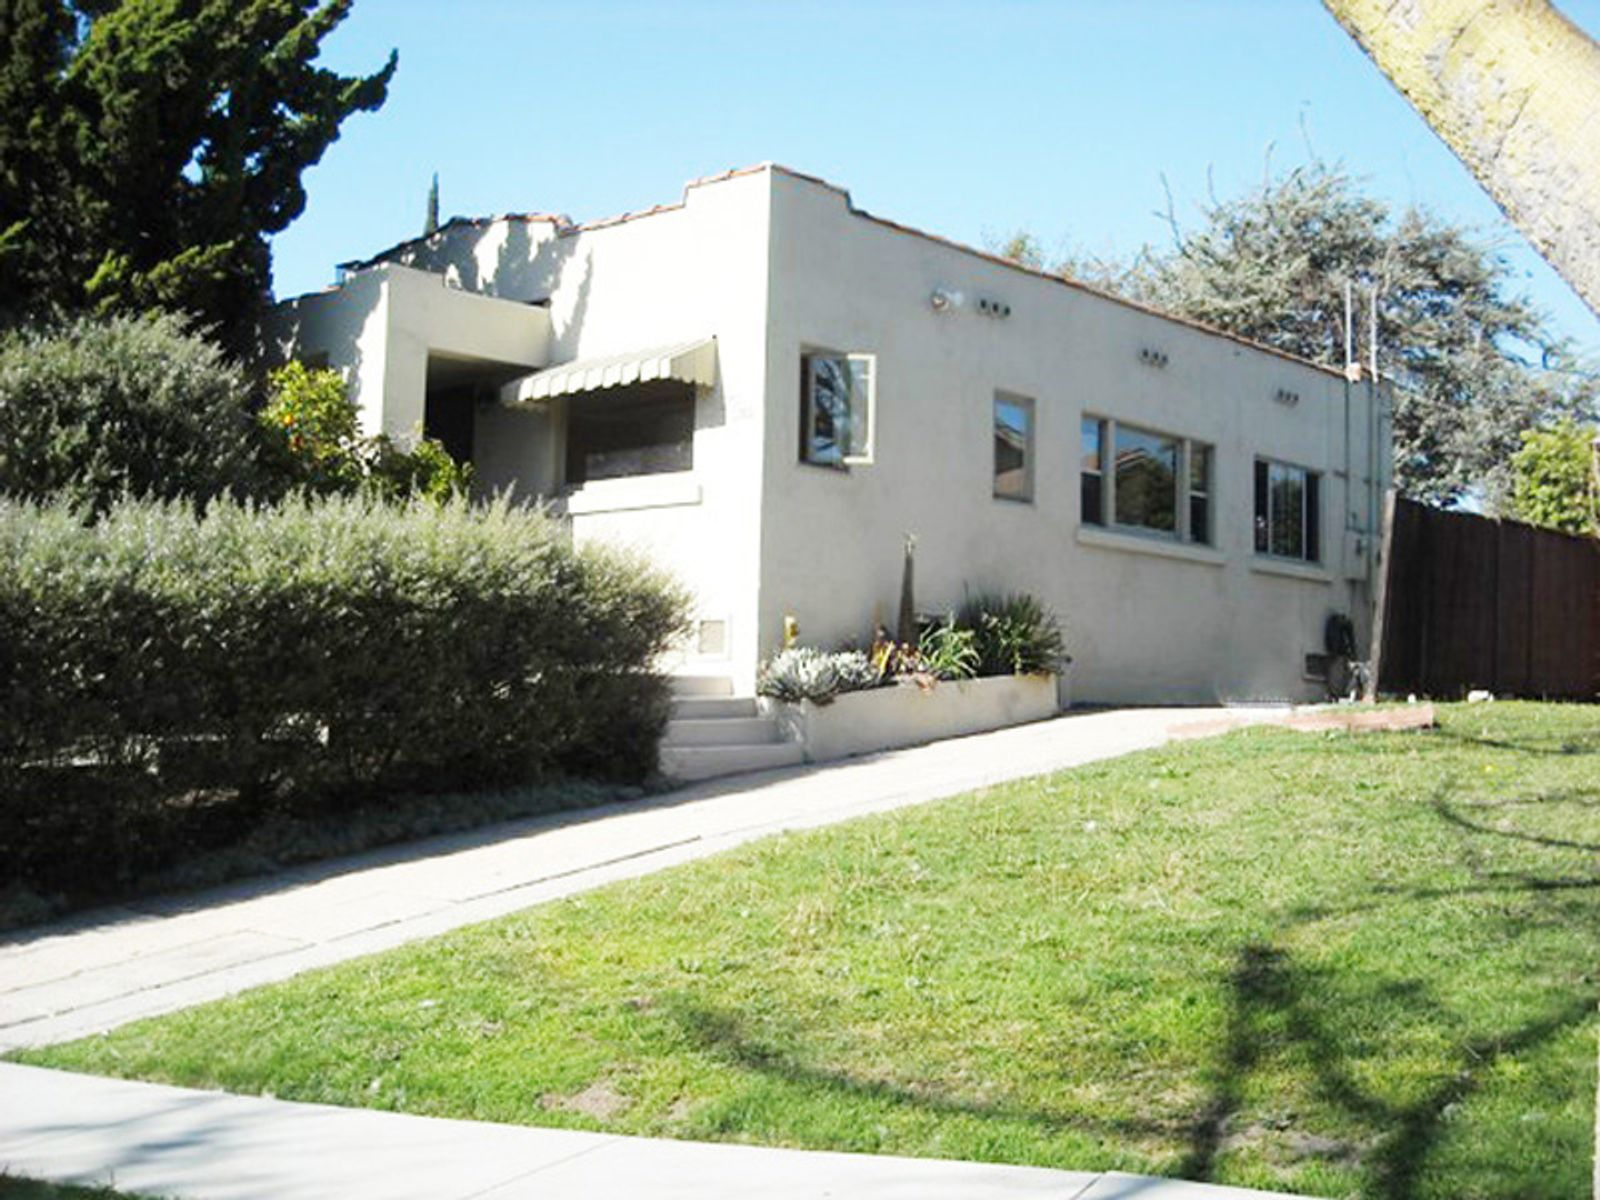 3749 Griffith View Drive, Los Angeles CA Multiple Units - Los Angeles Real Estate